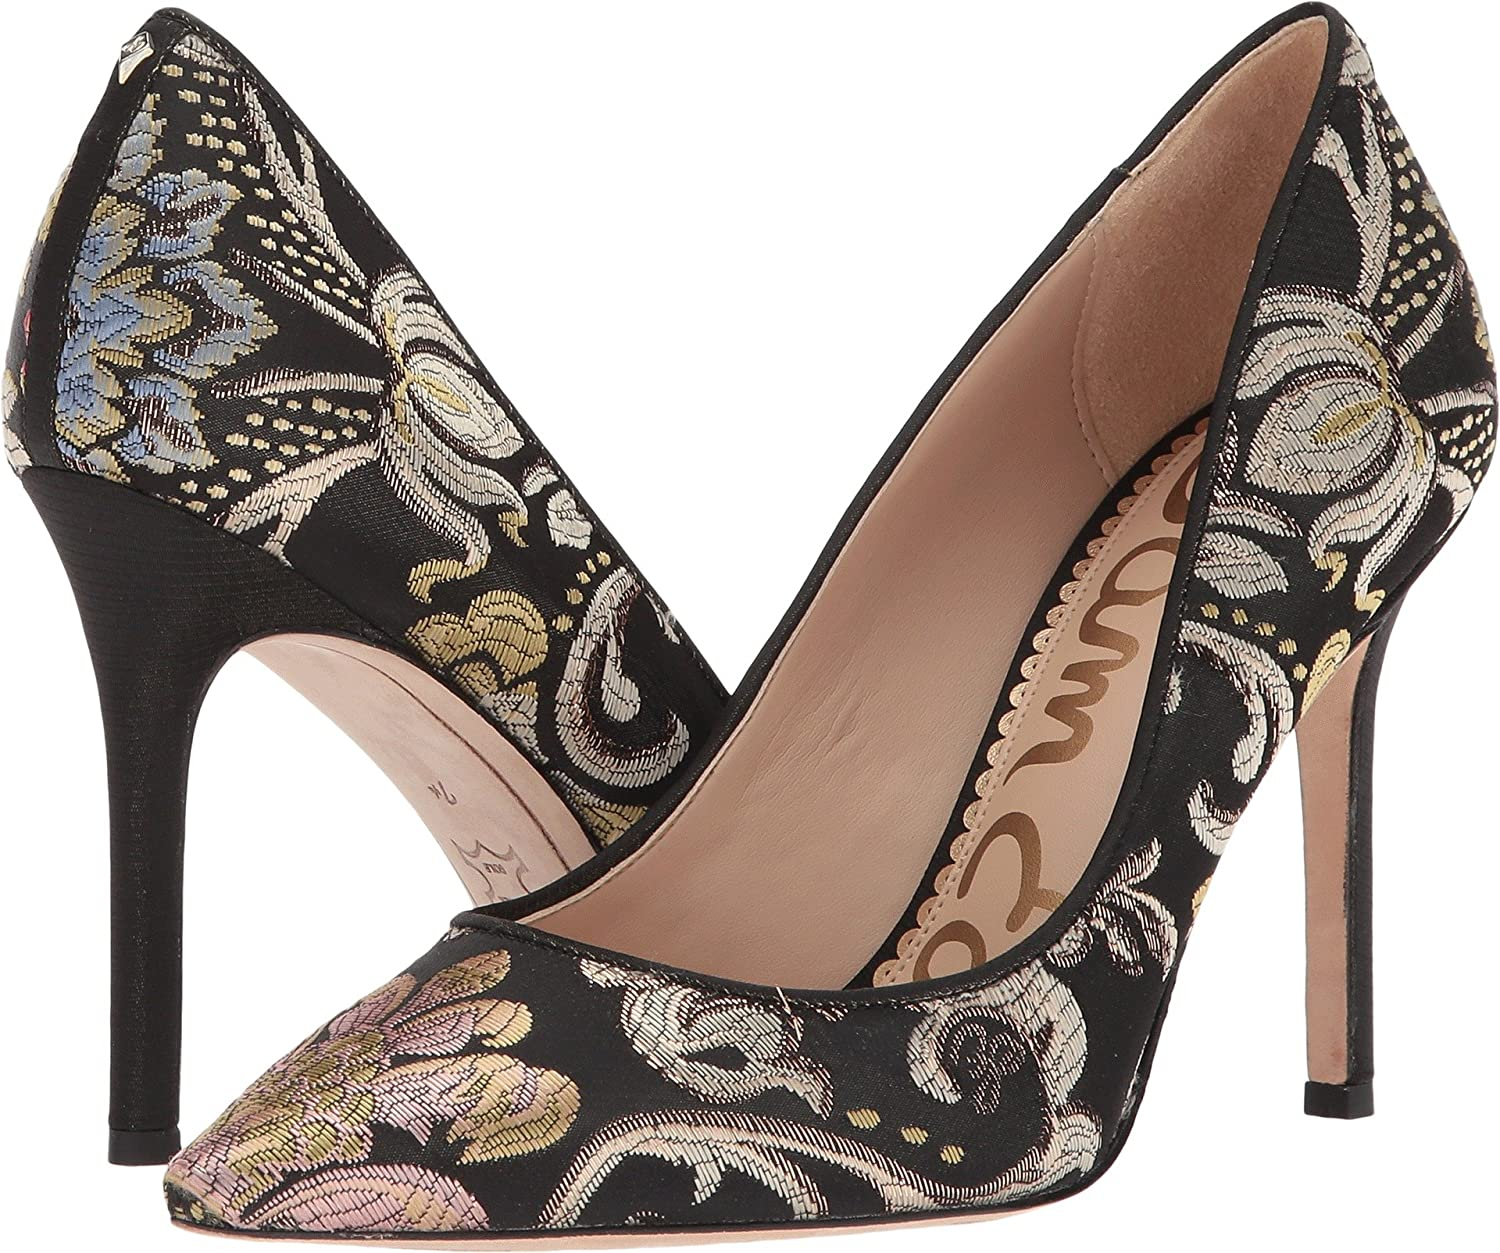 Sam Edelman Women's Hazel Dress Pump B06XJBRP21 8.5 W US|Black Multi Venezia Metallic Jacquard